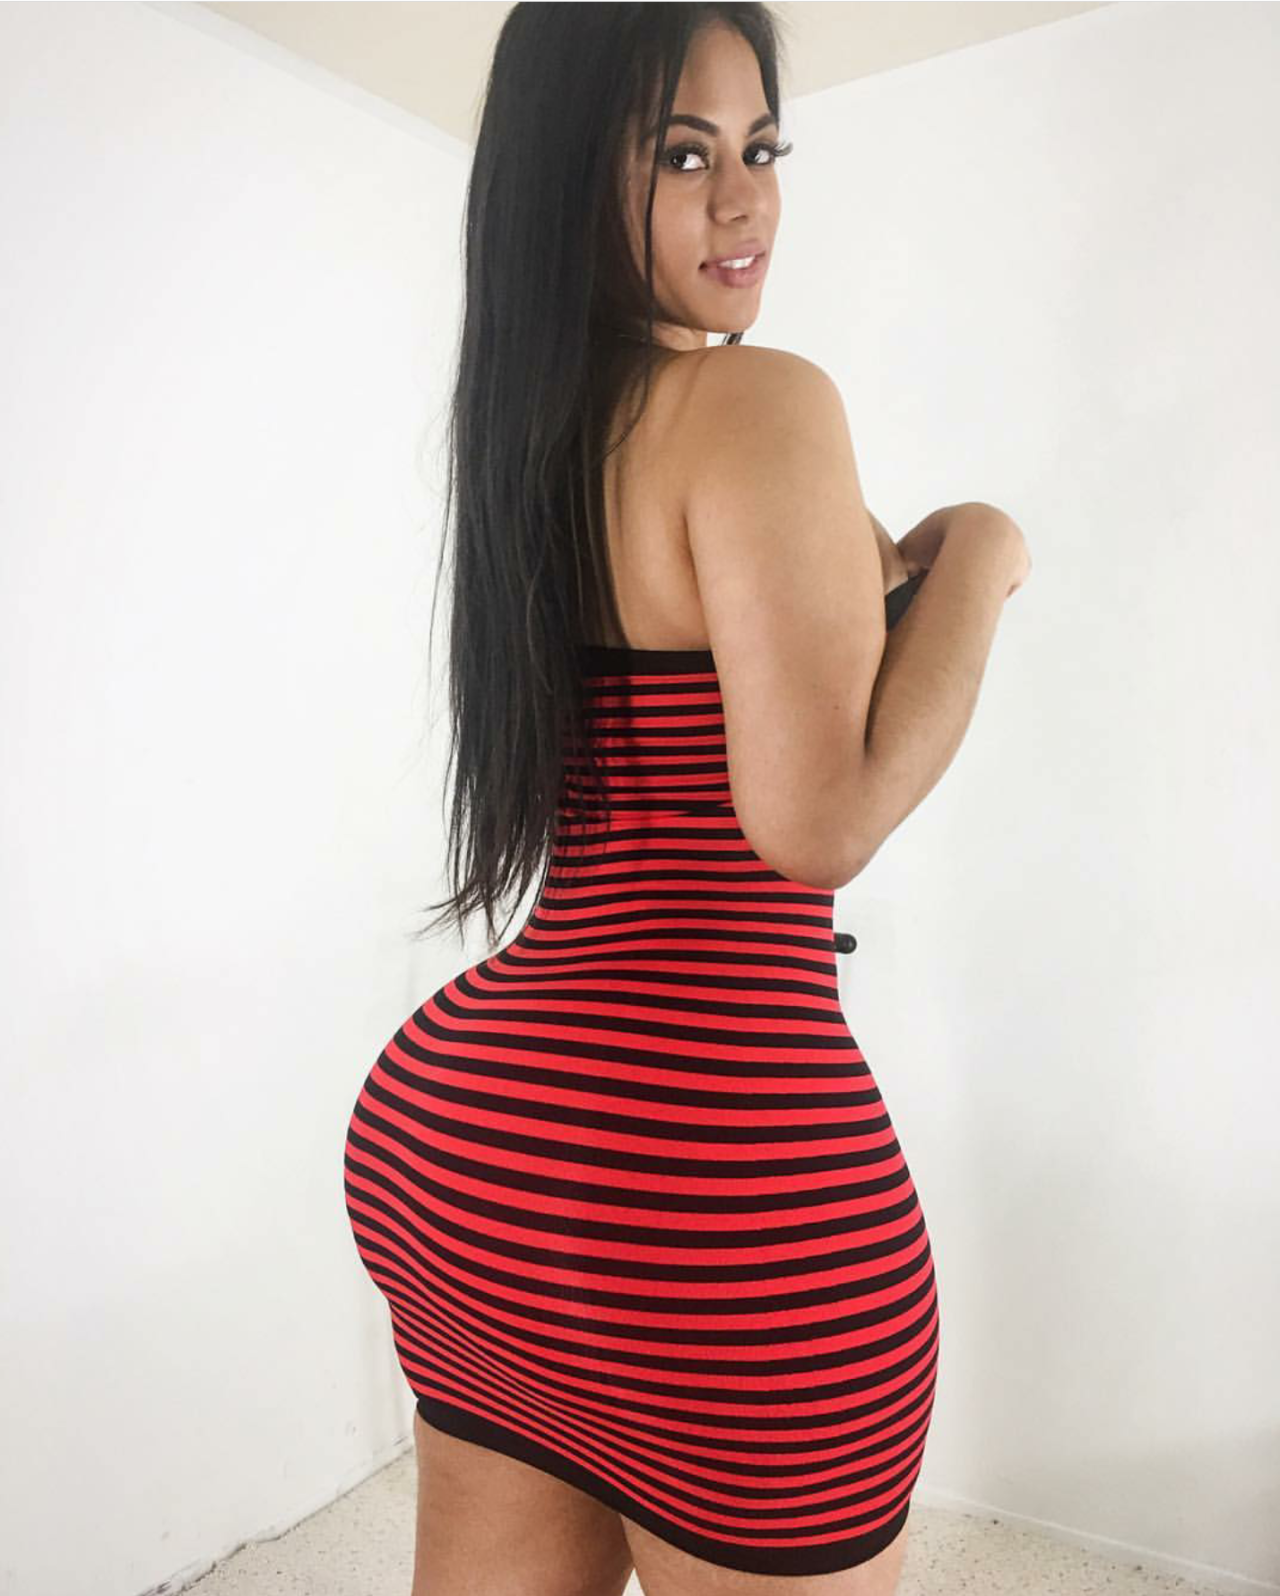 big ass pics, big black ass, big booty latinas, women & girls — hold